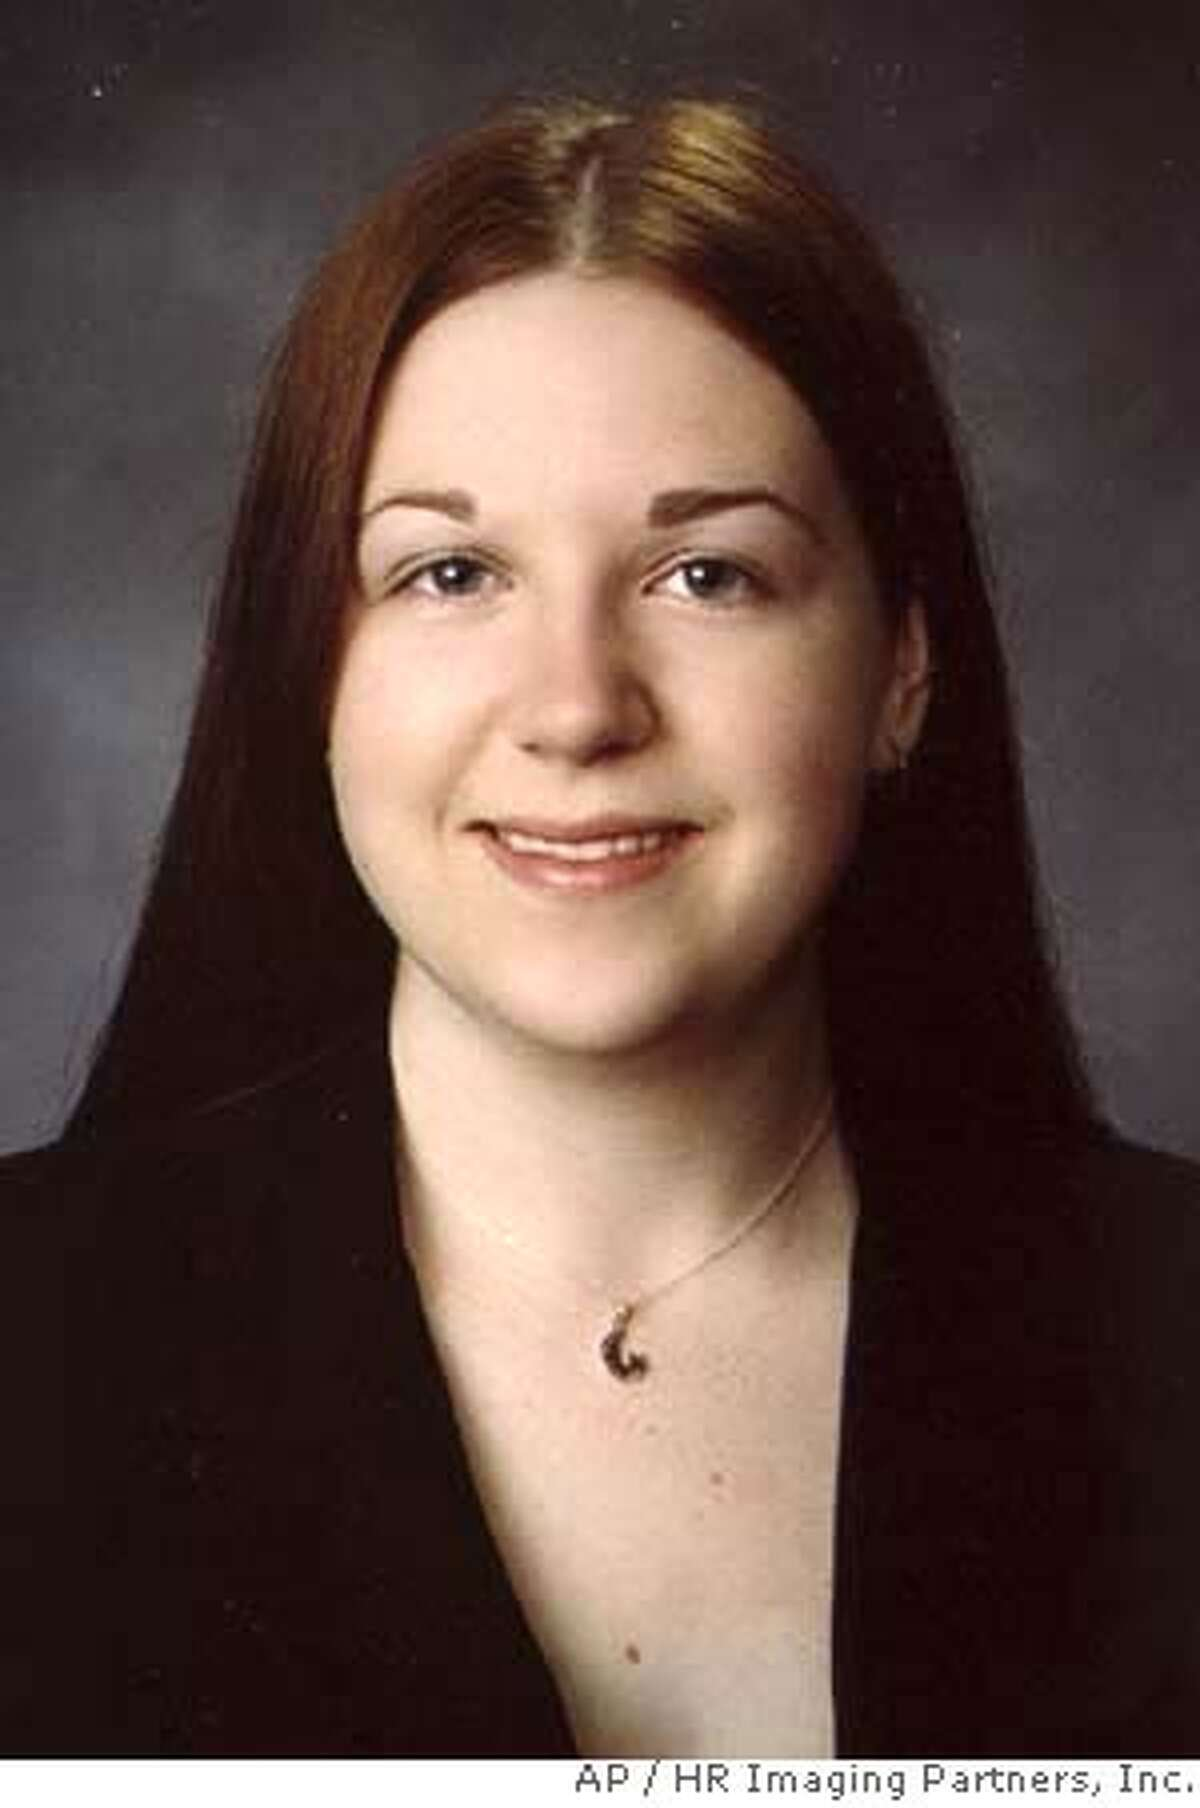 In this photo released Feb. 15, 2008, by HR Imaging Partners, Inc. Ryanne Mace, of Carpentersville, Ill., is shown. Mace, 19, is identified by the DeKalb County coroner's office as one of the students shot to death Thursday, Feb. 14, 2008, at Northern Illinois University in DeKalb, Ill. (AP Photo/HR Imaging Partners, Inc.) **NO SALES** NO SALES; AP provides access to this publicly distributed HANDOUT photo to be used only to illustrate news reporting or commentary on the facts or events depicted in this image.